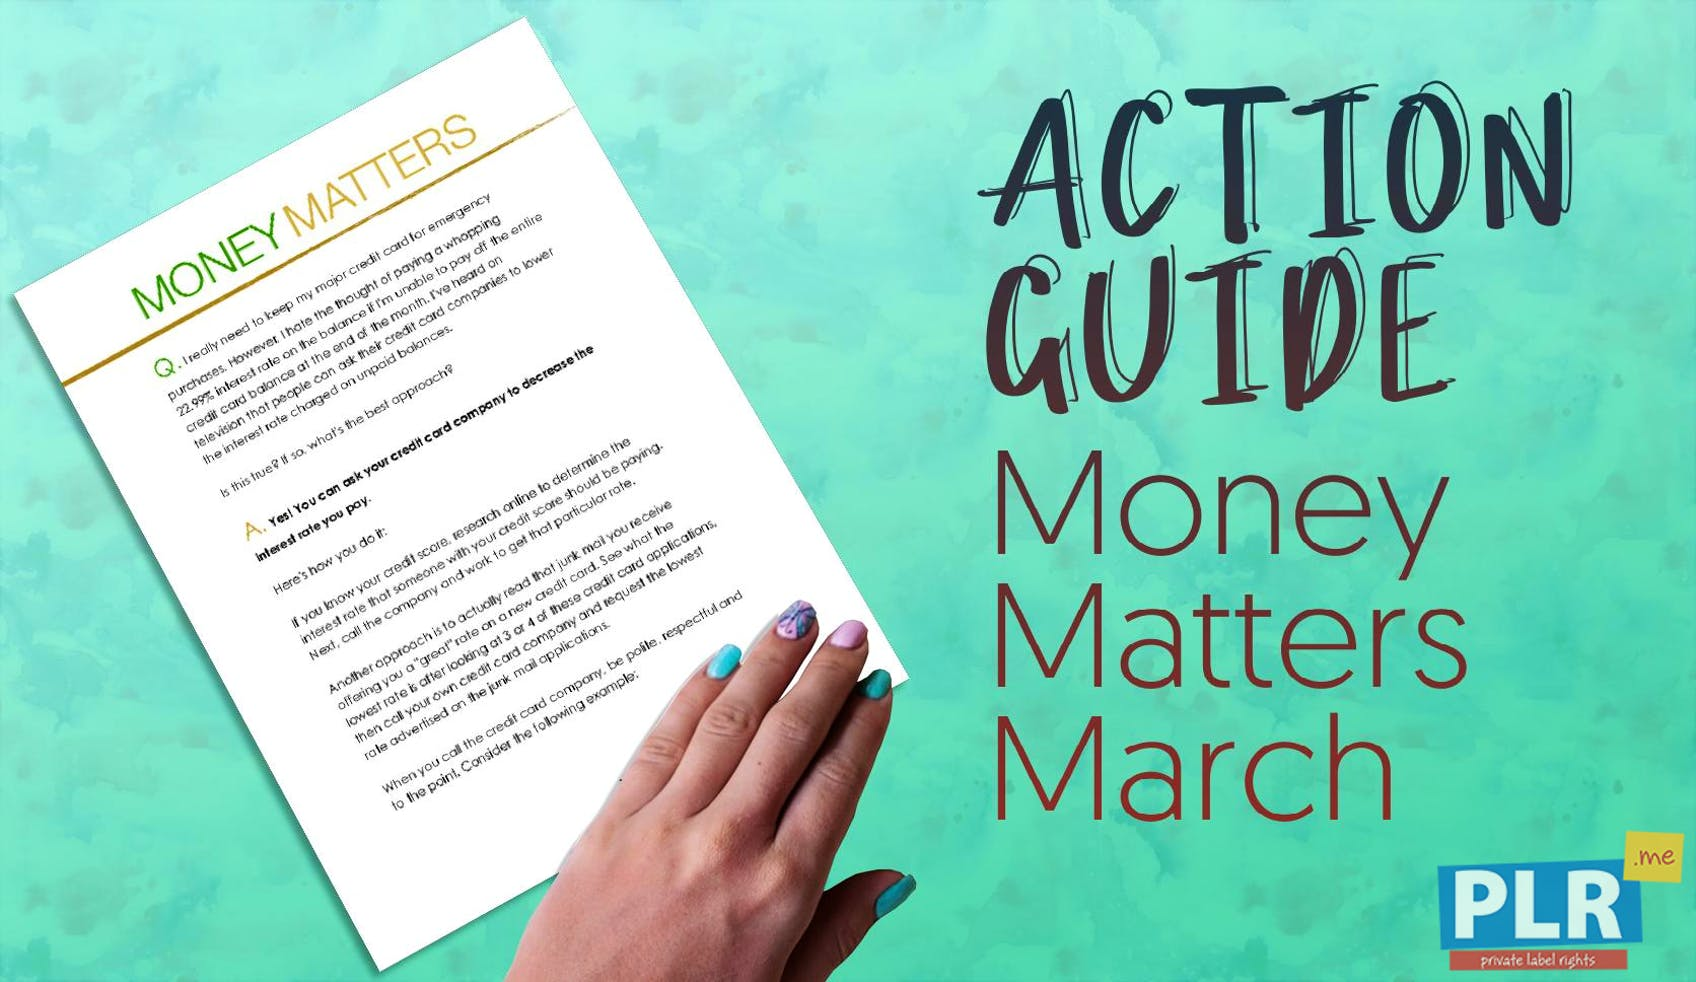 Money Matters March